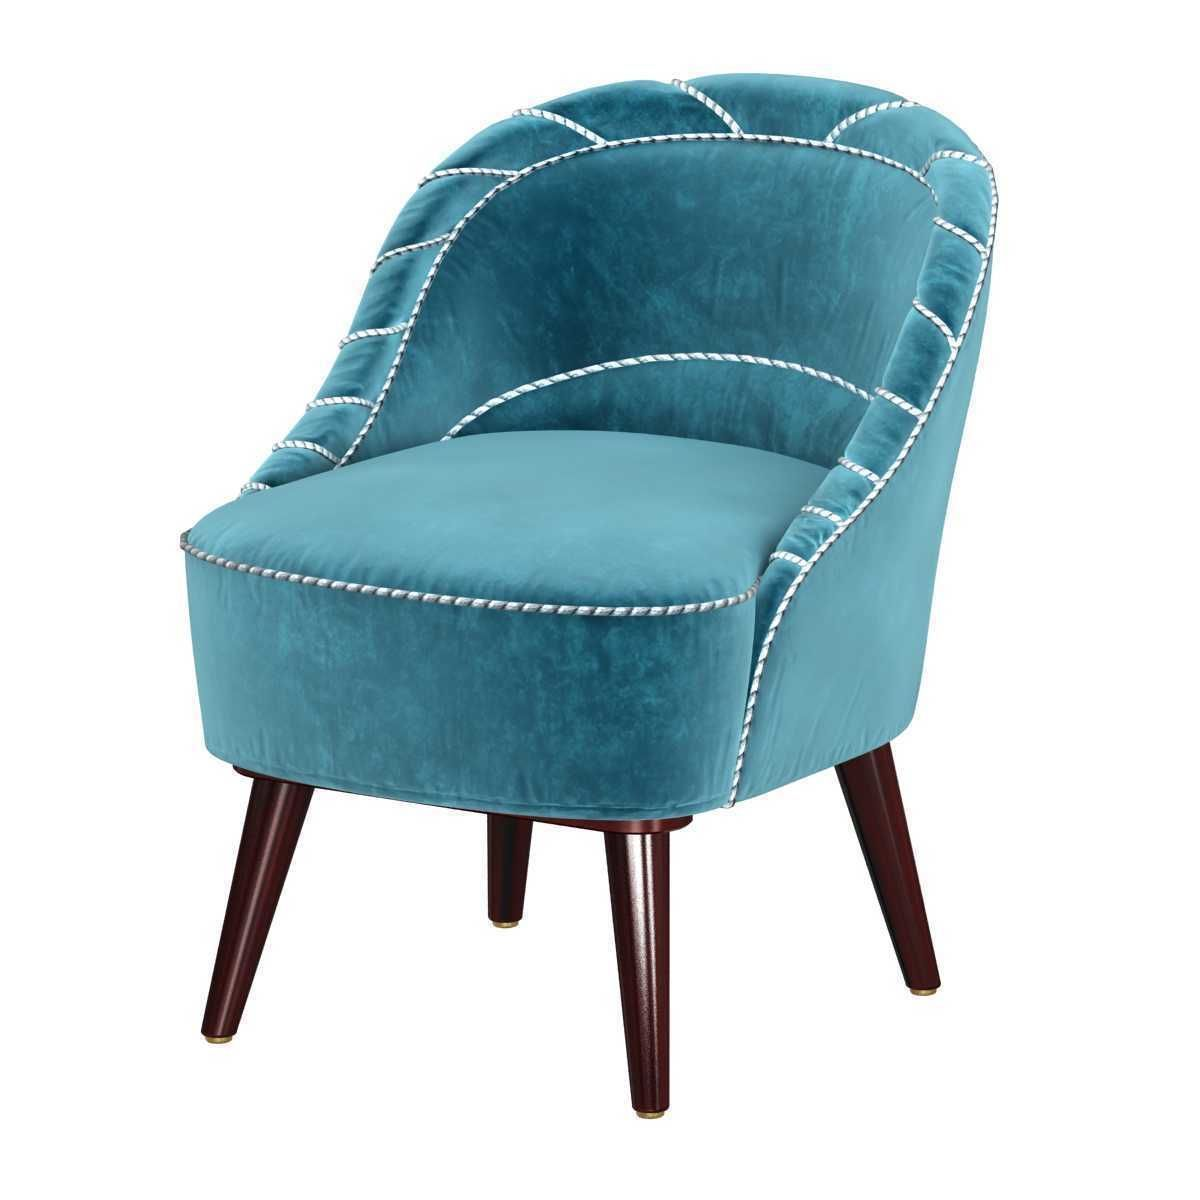 SMALL DANISH MID-CENTURY SLIPPER CHAIR IN TURQUOISE MOHAIR